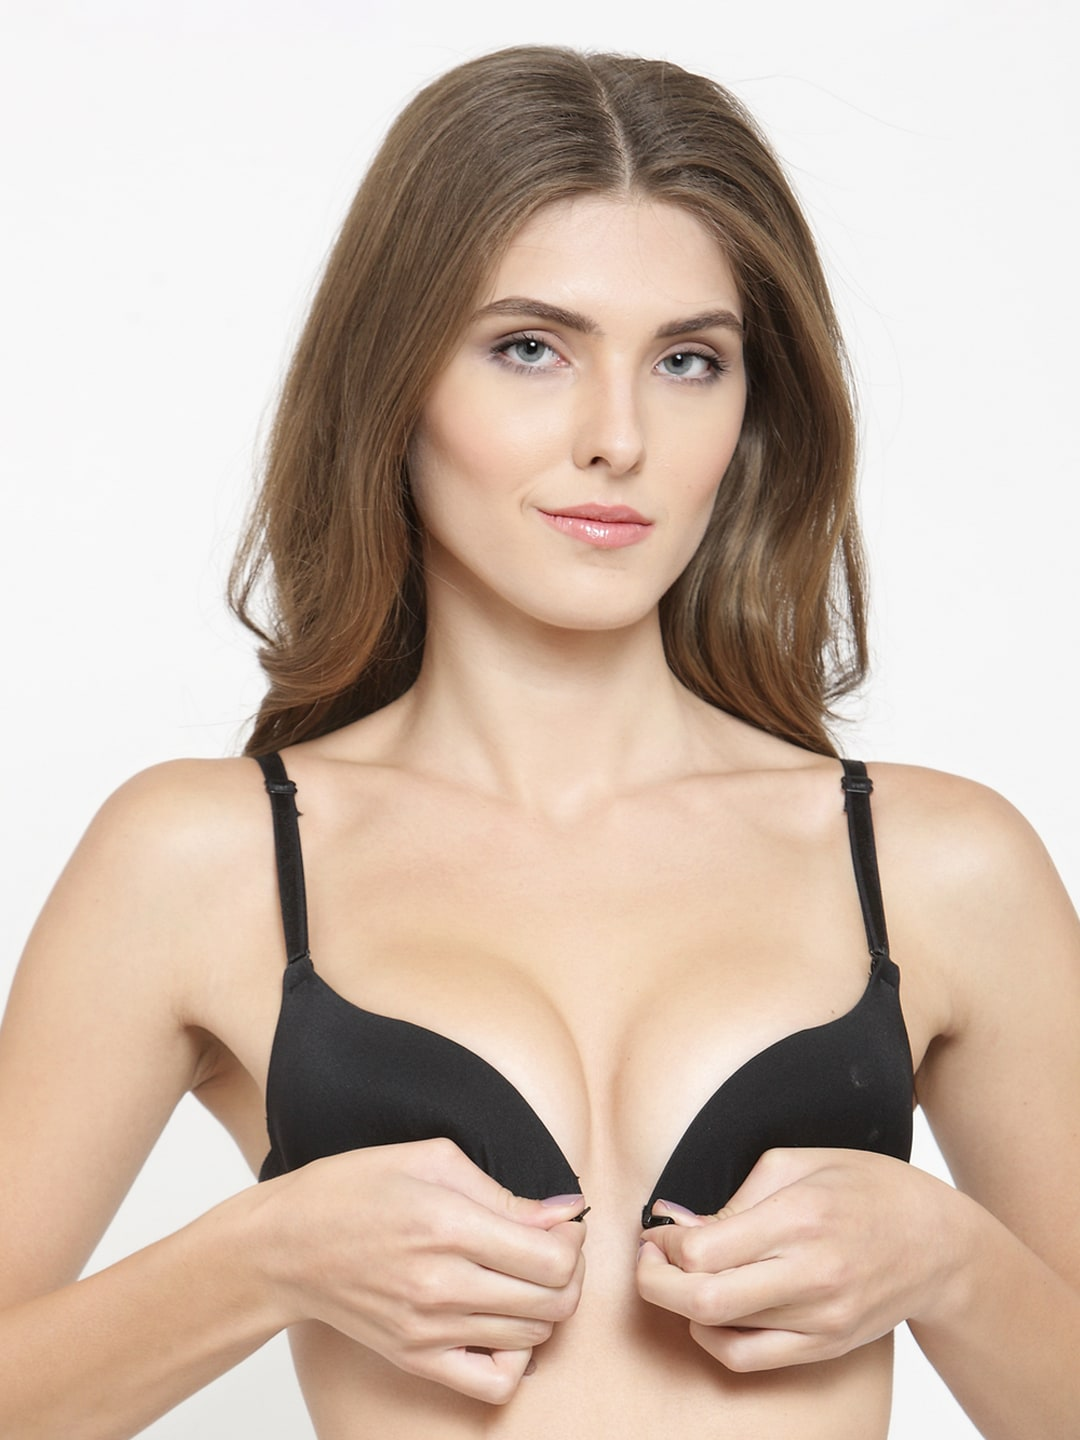 47a0f339009 Push Up Bra - Buy Push-Up Bras for ladies Online   Best Price